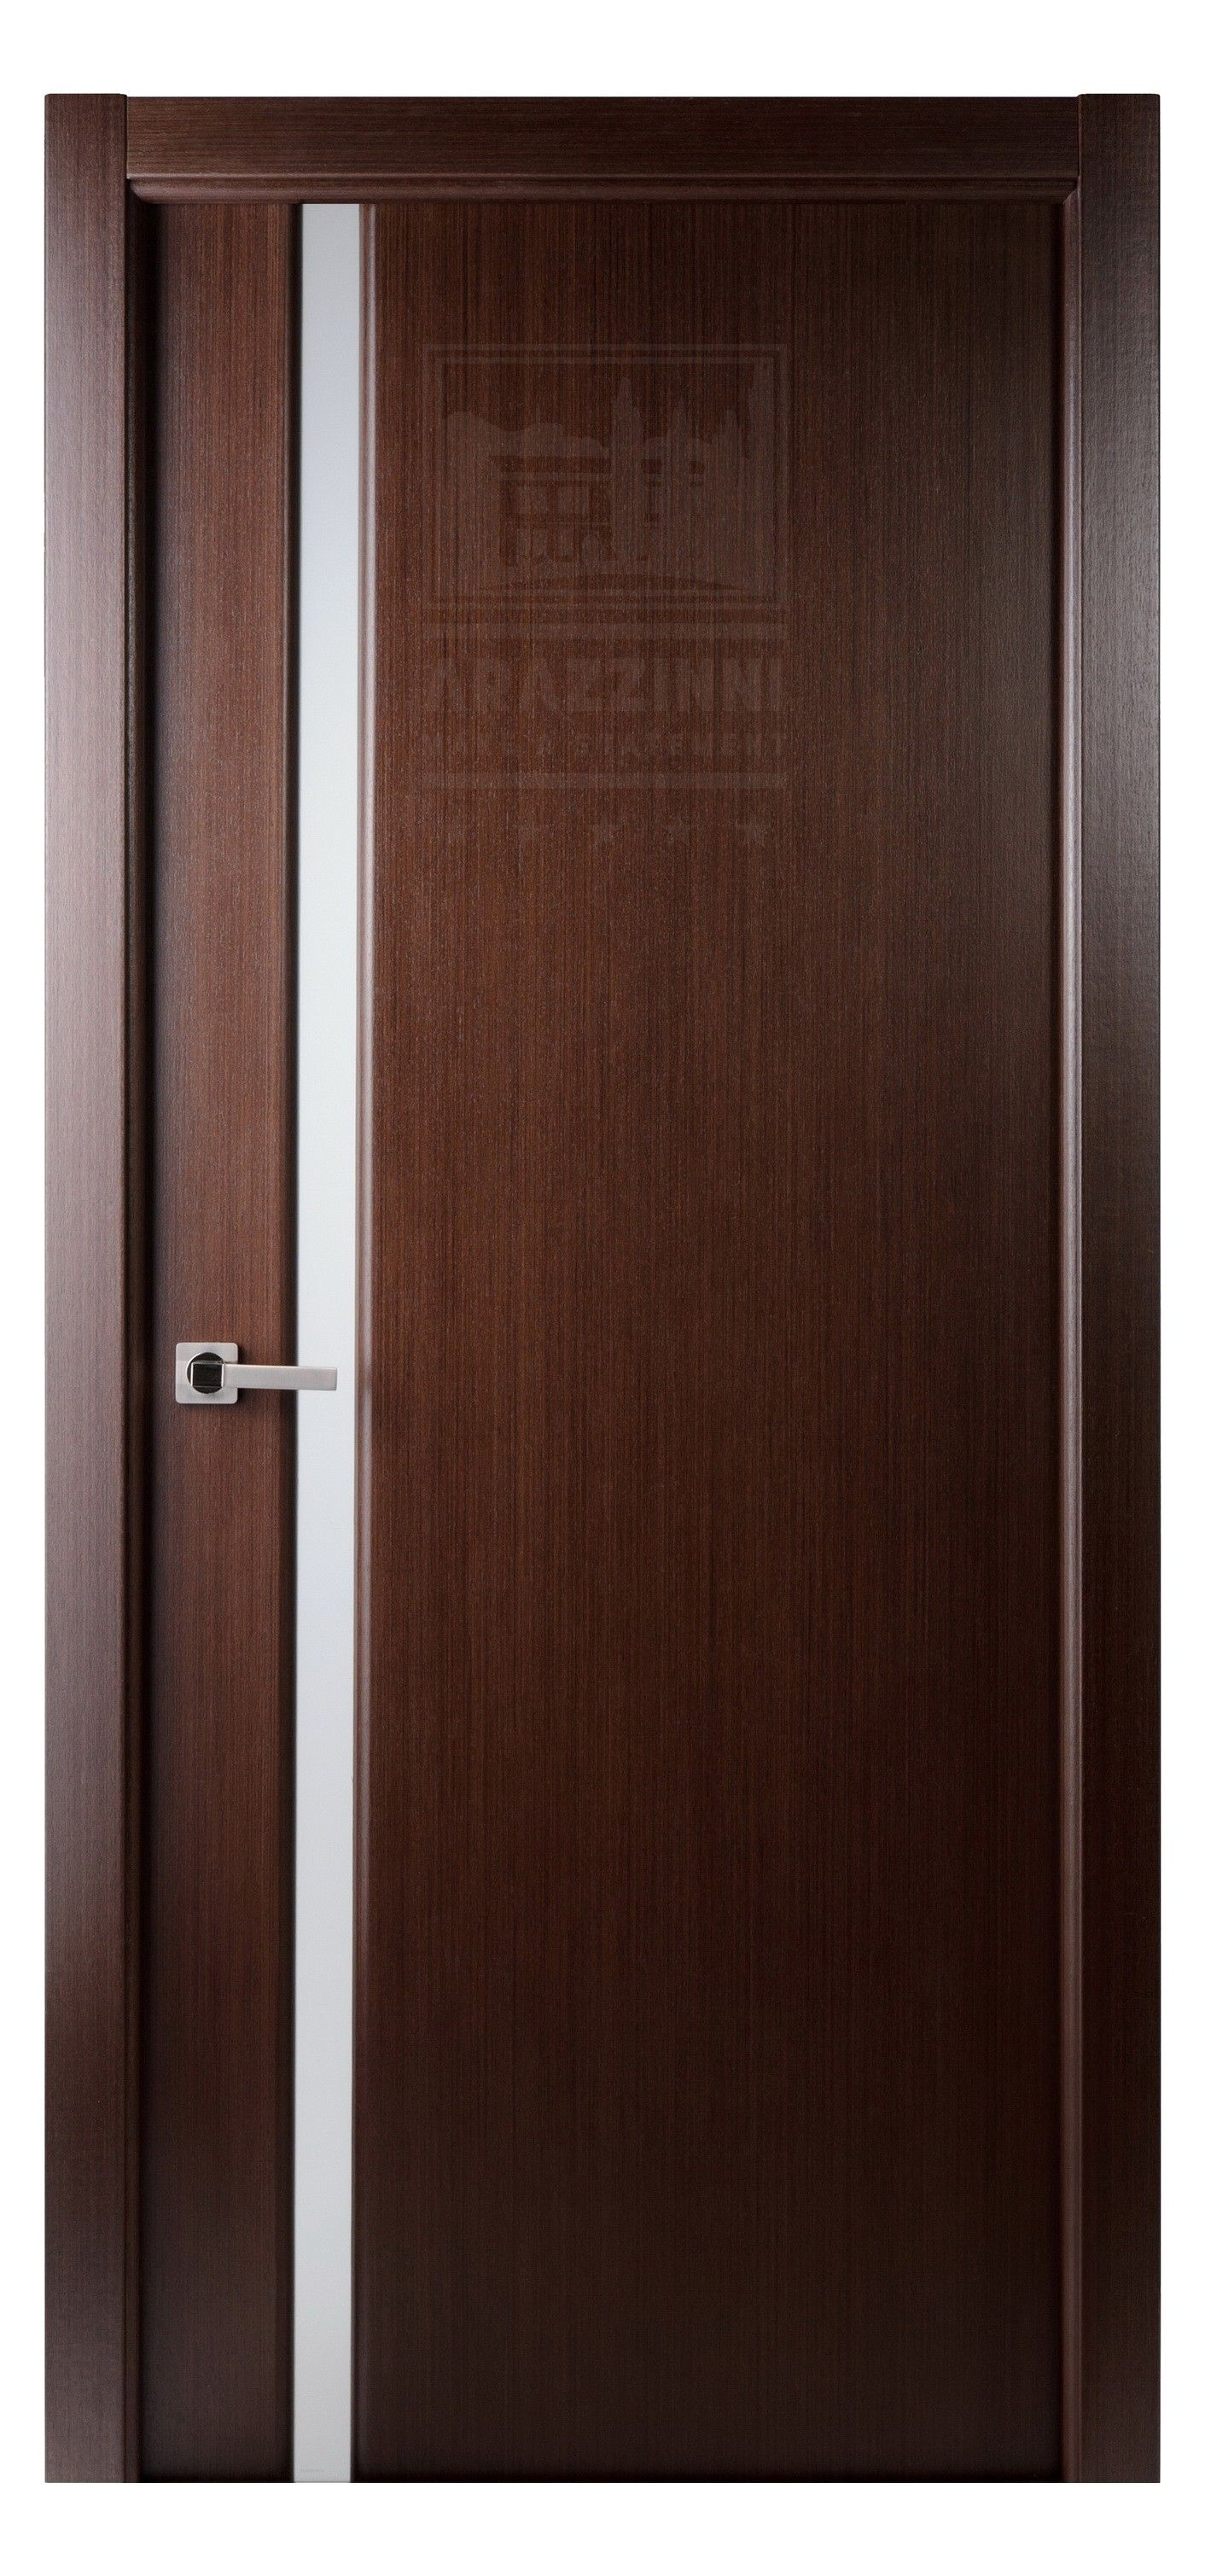 grand 208 interior door in a wenge finish | exotic wood veneer